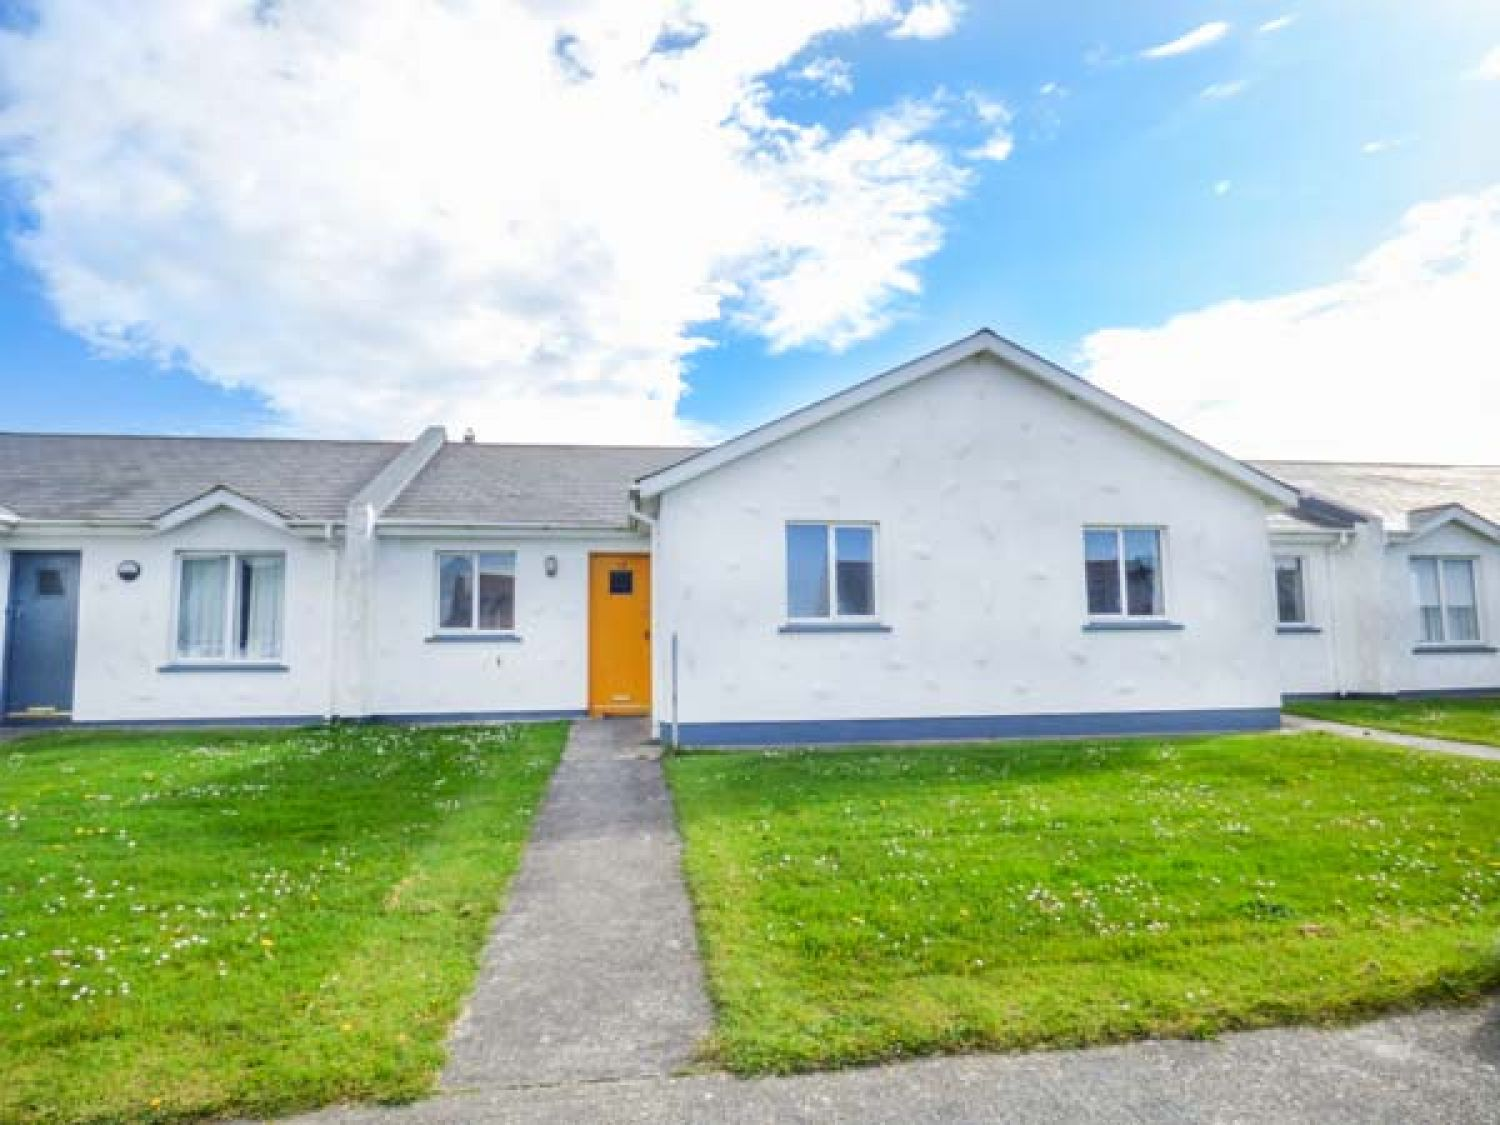 19 St Helens Bay Drive - County Wexford - 943155 - photo 1